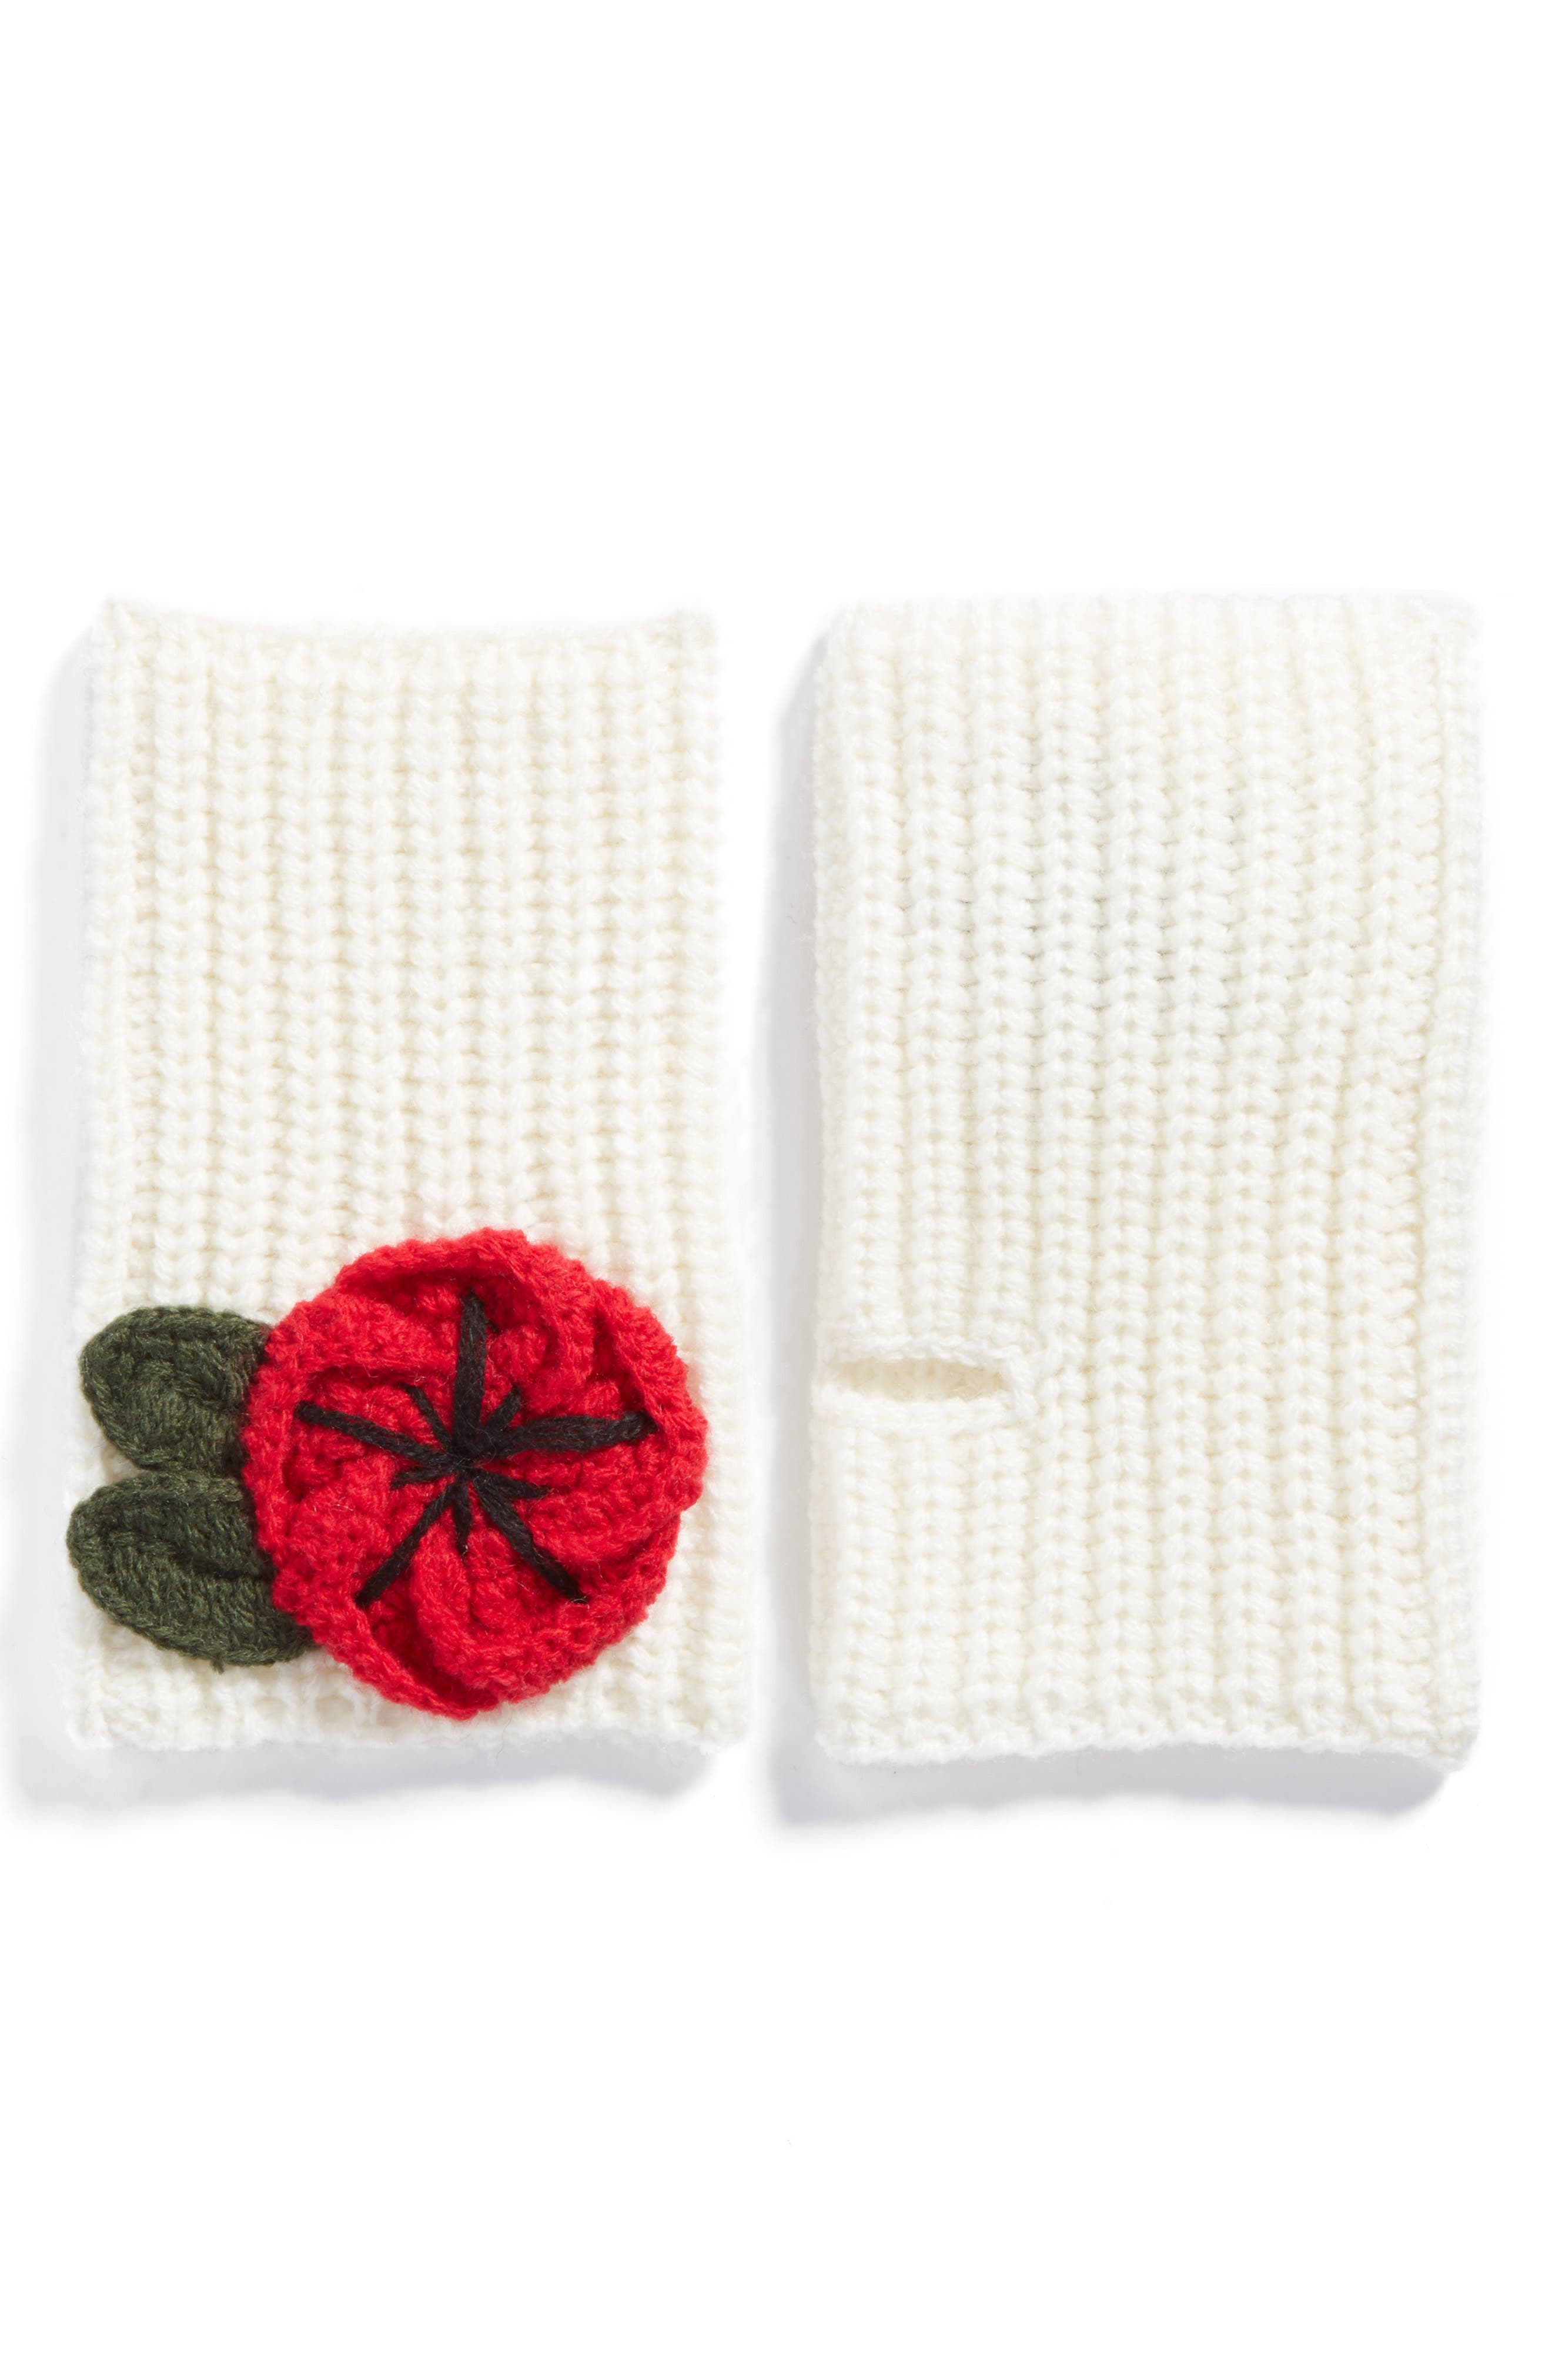 kate spade new york crocheted poppy arm warmers